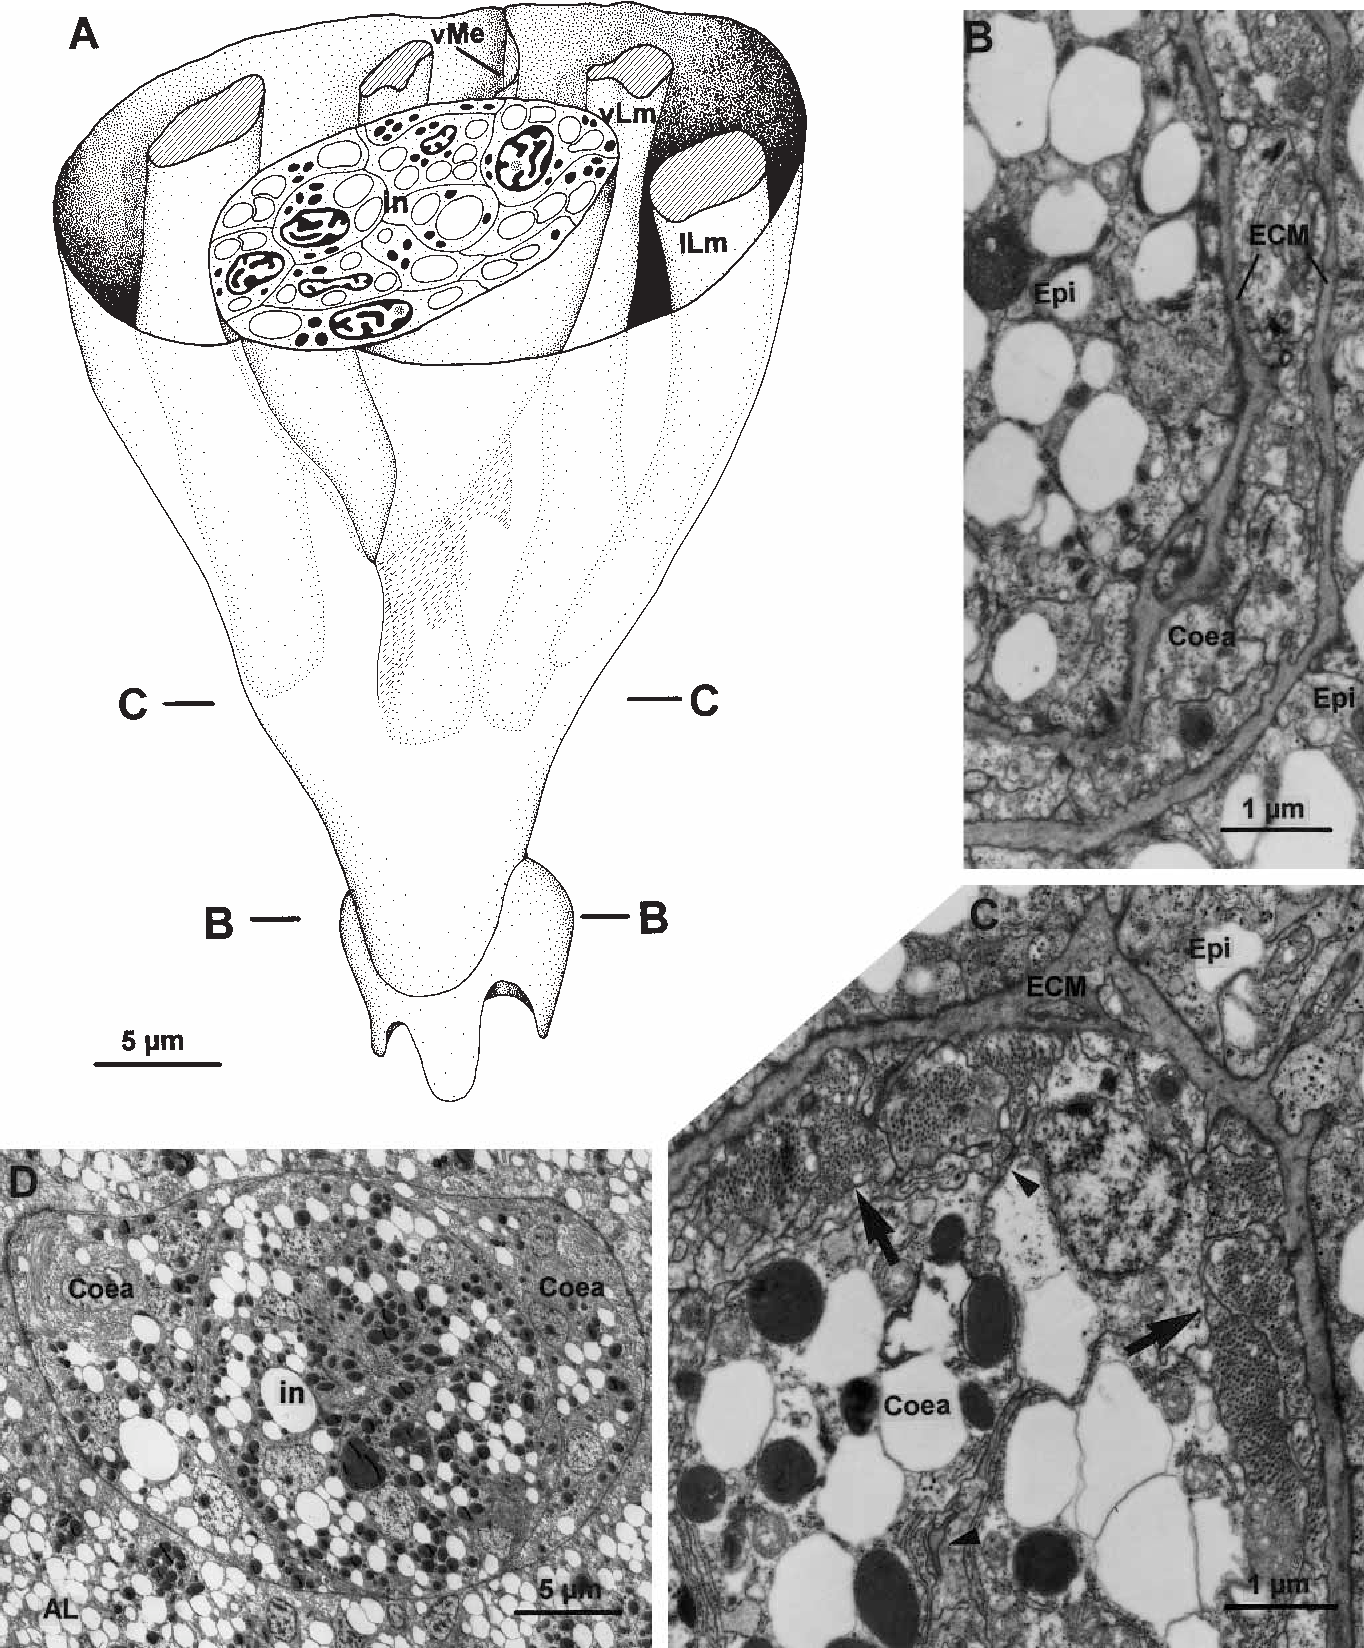 Fig. 4A–D C. inconspicua. Coelomic anlage of the late threelobed stage just before settlement. A Reconstruction of the coelomic anlage in the caudal part of the larva (mesoderm, except muscle strands, and epidermis not shown). B,C Cross-sections of the caudal part of the coelomic anlage, corresponding to the planes (B,C) in A. B Section on the level of the cup-like depression of the pedicle lobe. C The mesodermal cells still contain electron-dense yolk droplets. Notice the pair of ventral longitudinal muscle